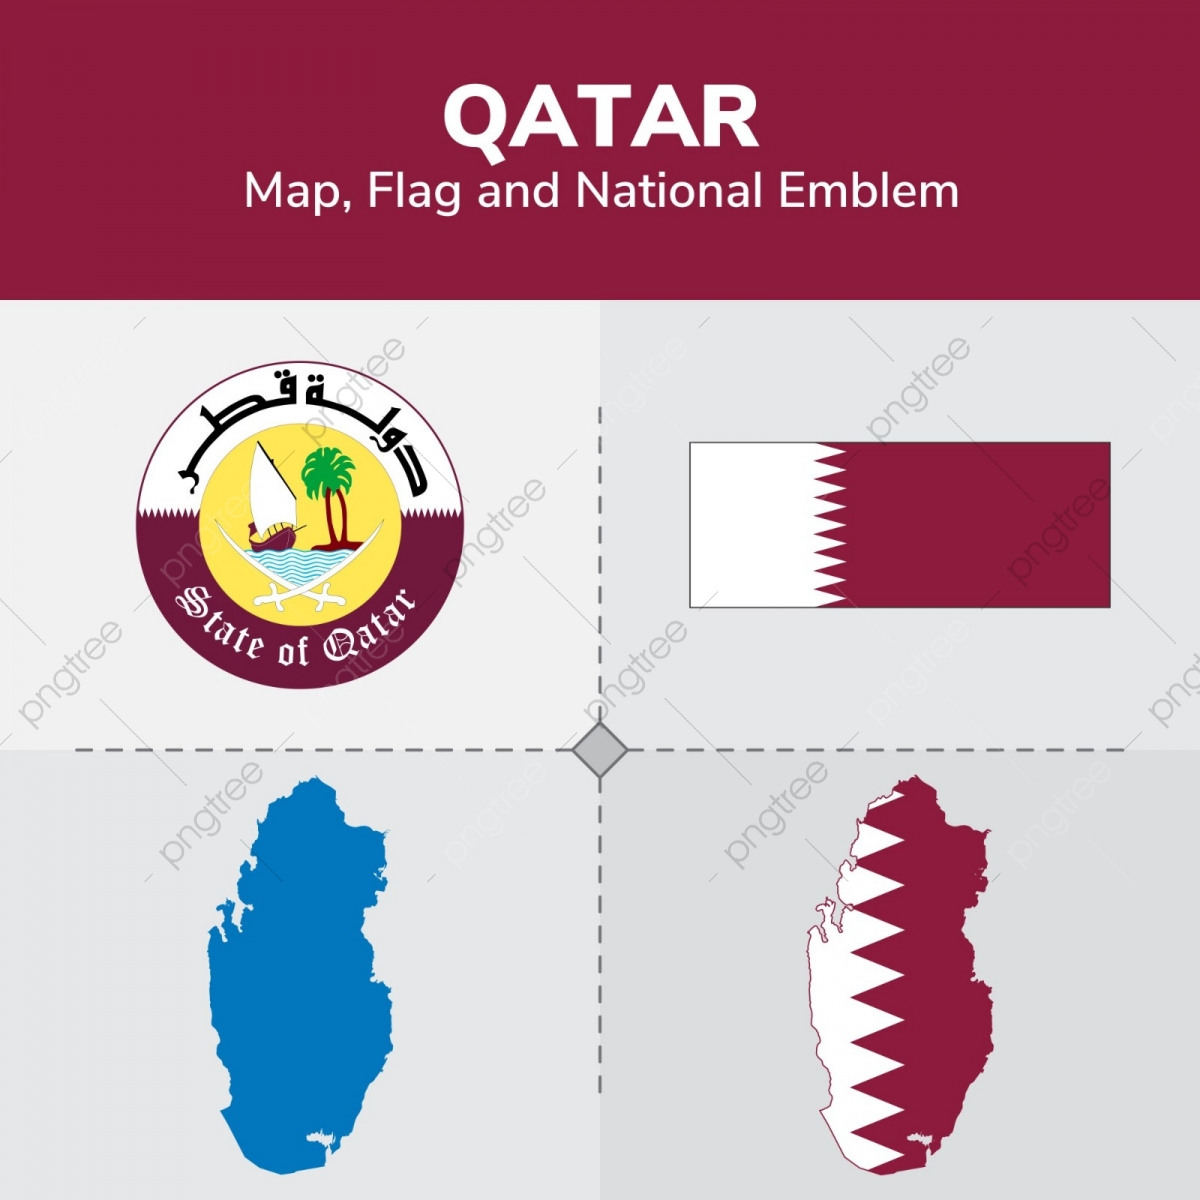 Qatar Map Flag And National Emblem, Continents, Countries